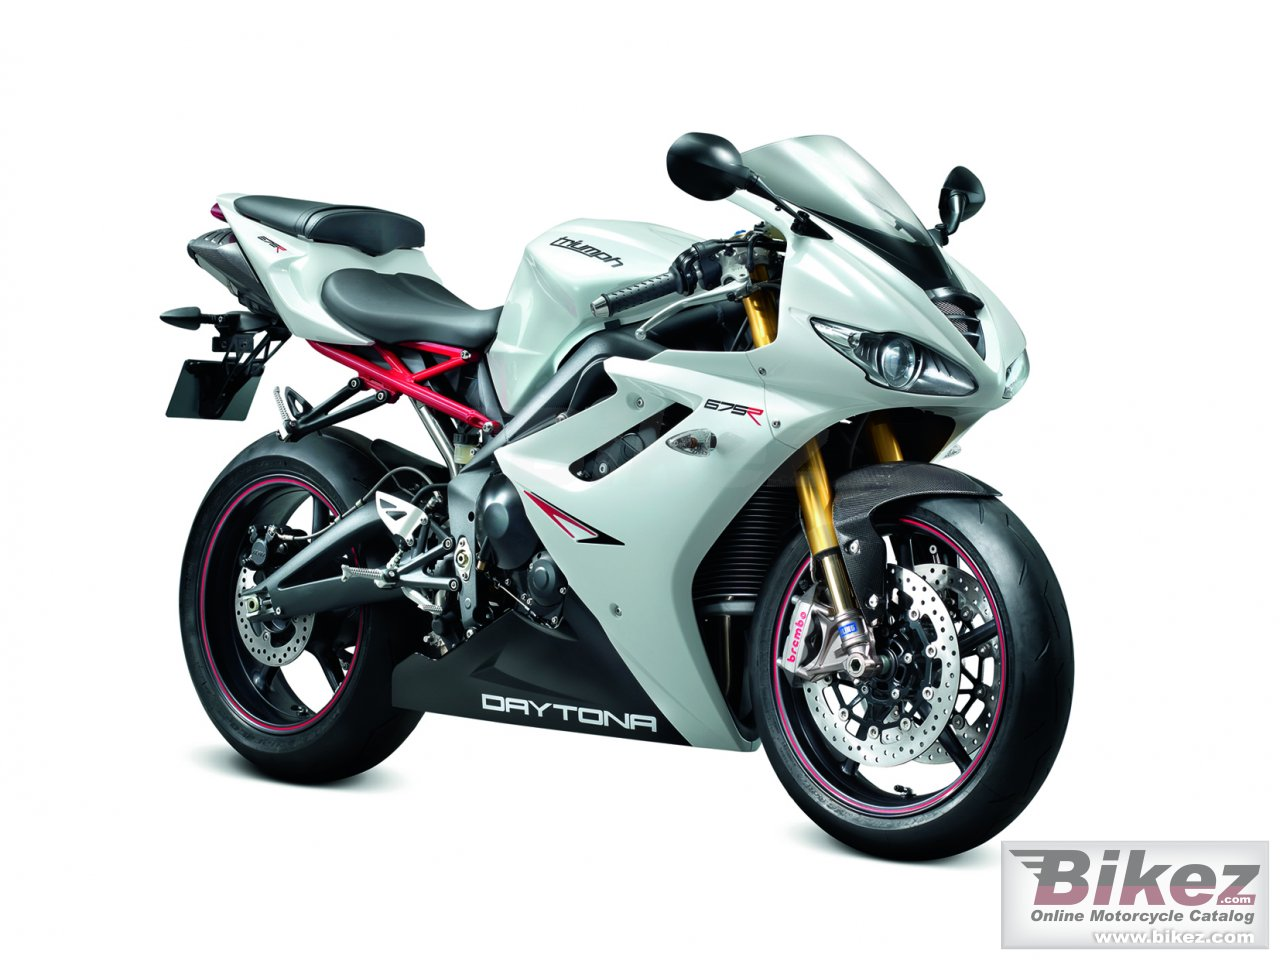 Big Triumph daytona 675 r picture and wallpaper from Bikez.com